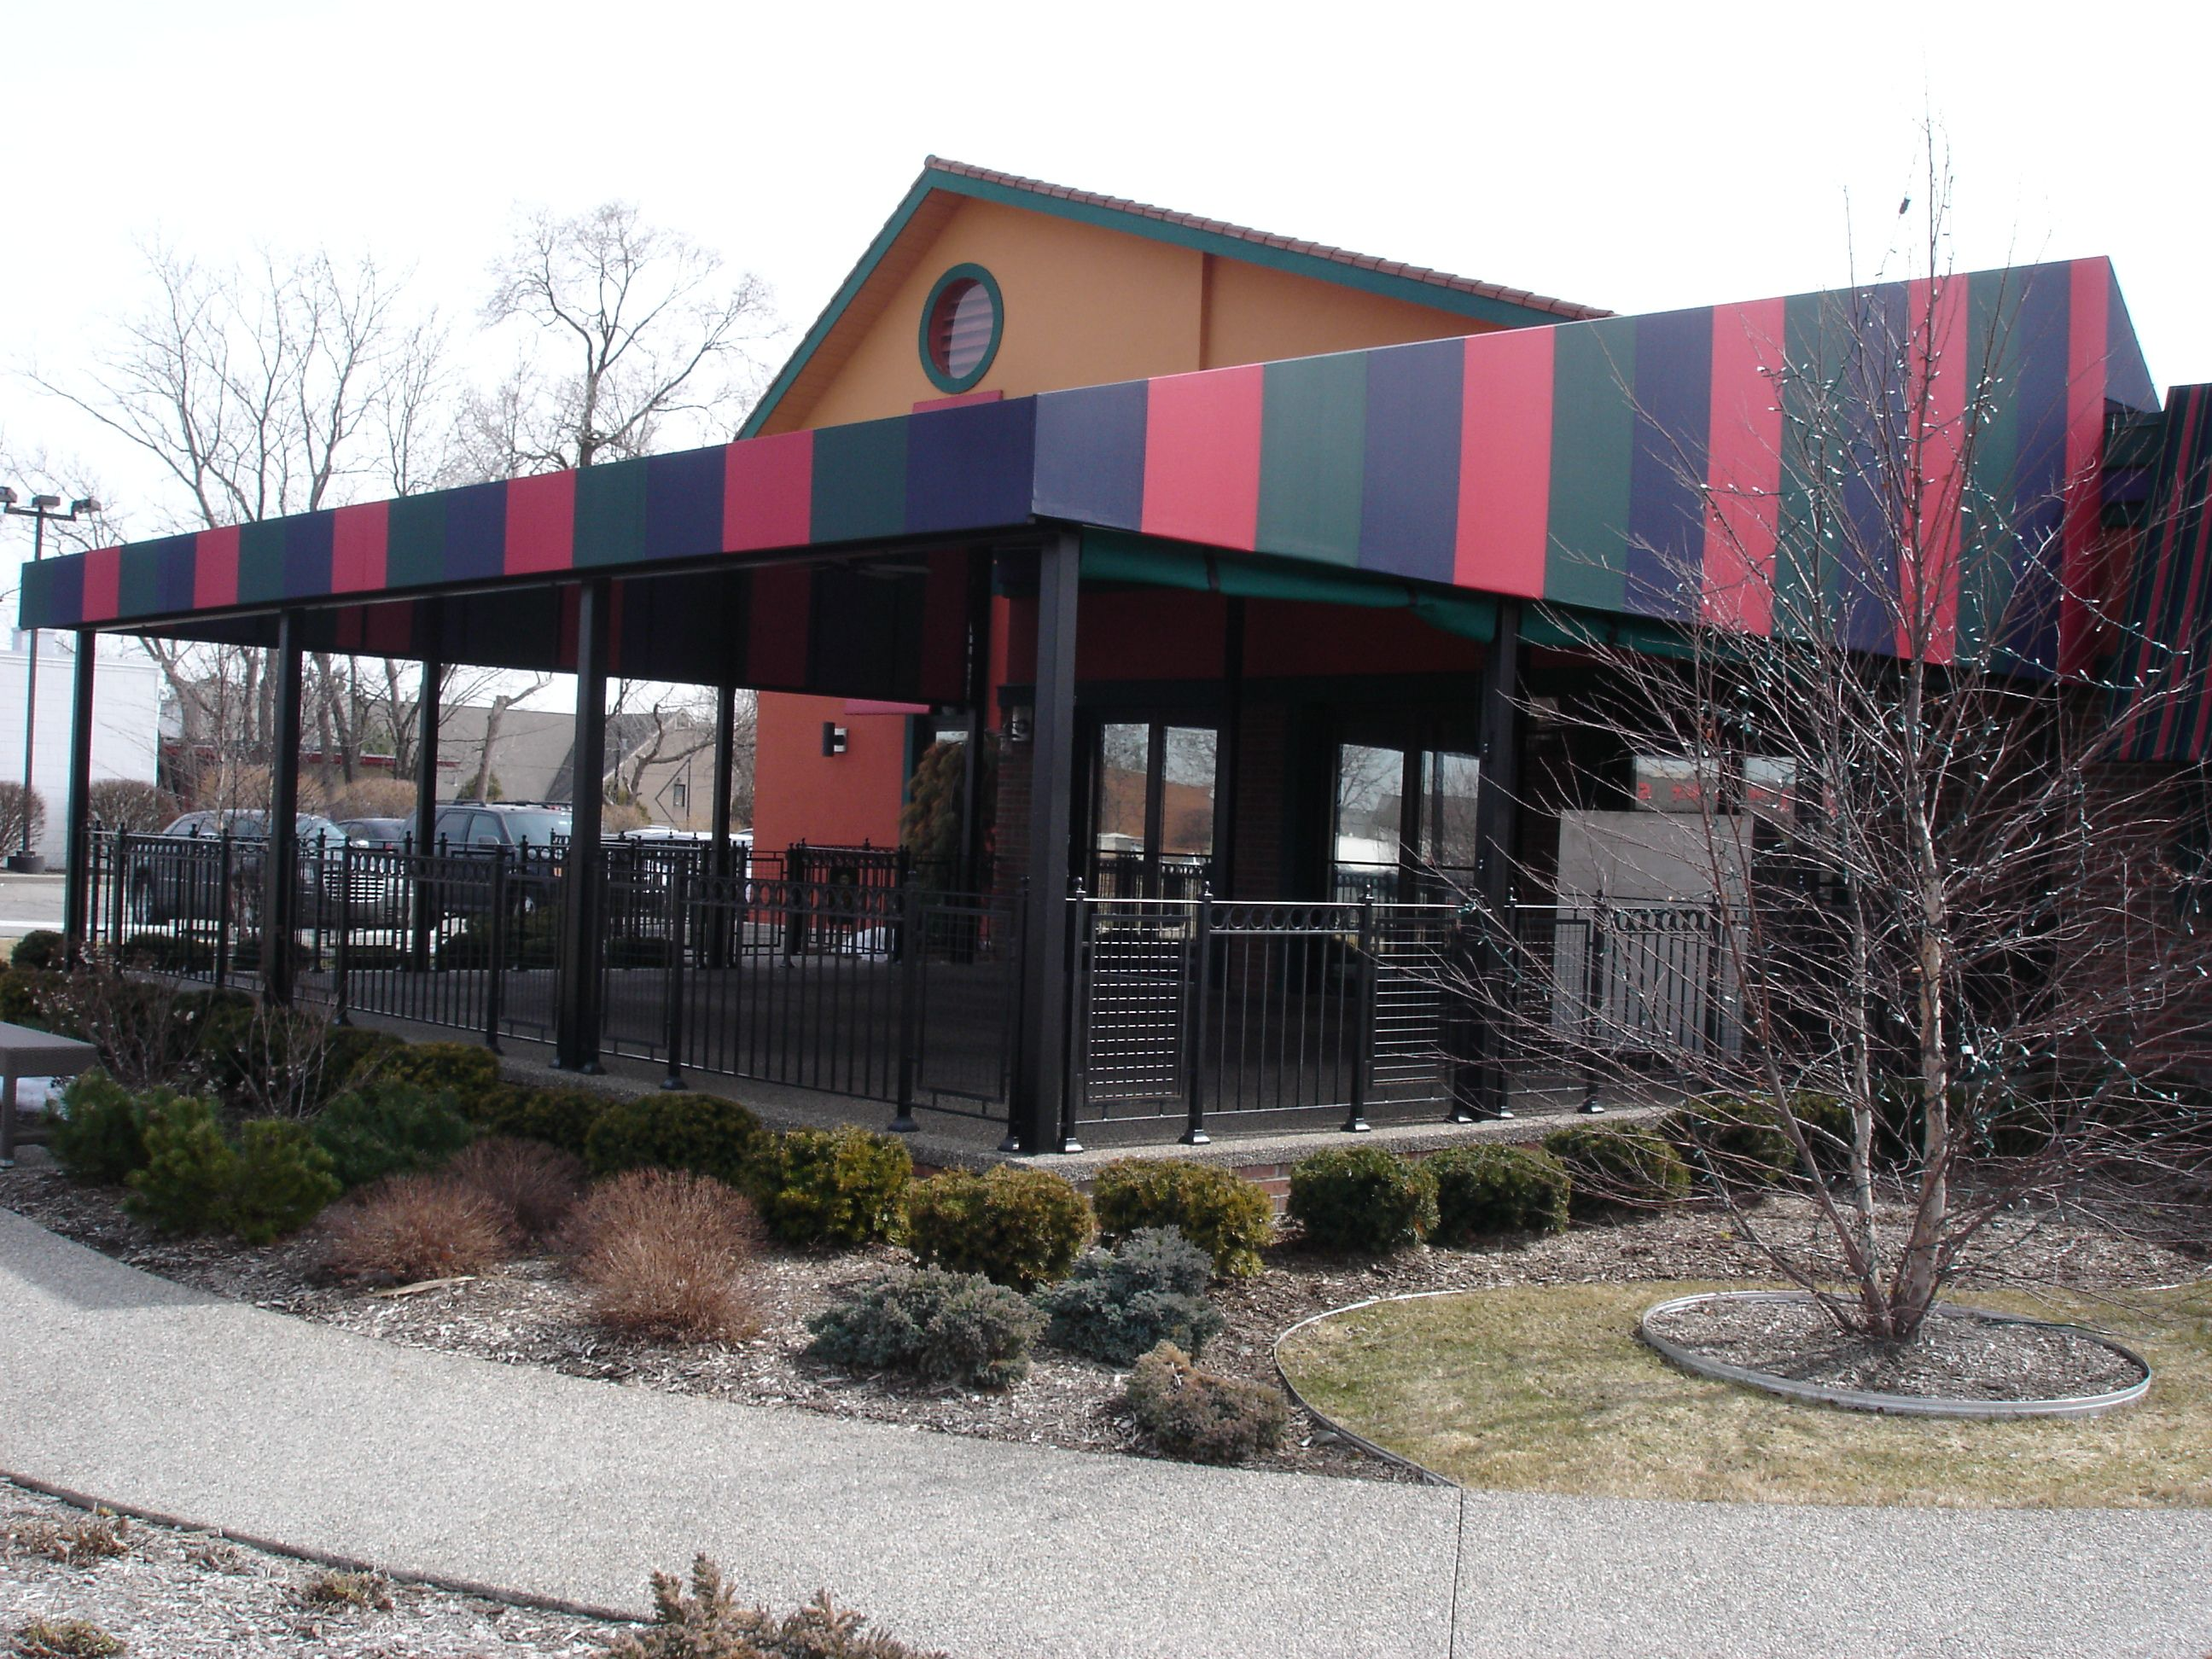 Pin By Marygrove Awnings On Store Fronts Buddys Pizza